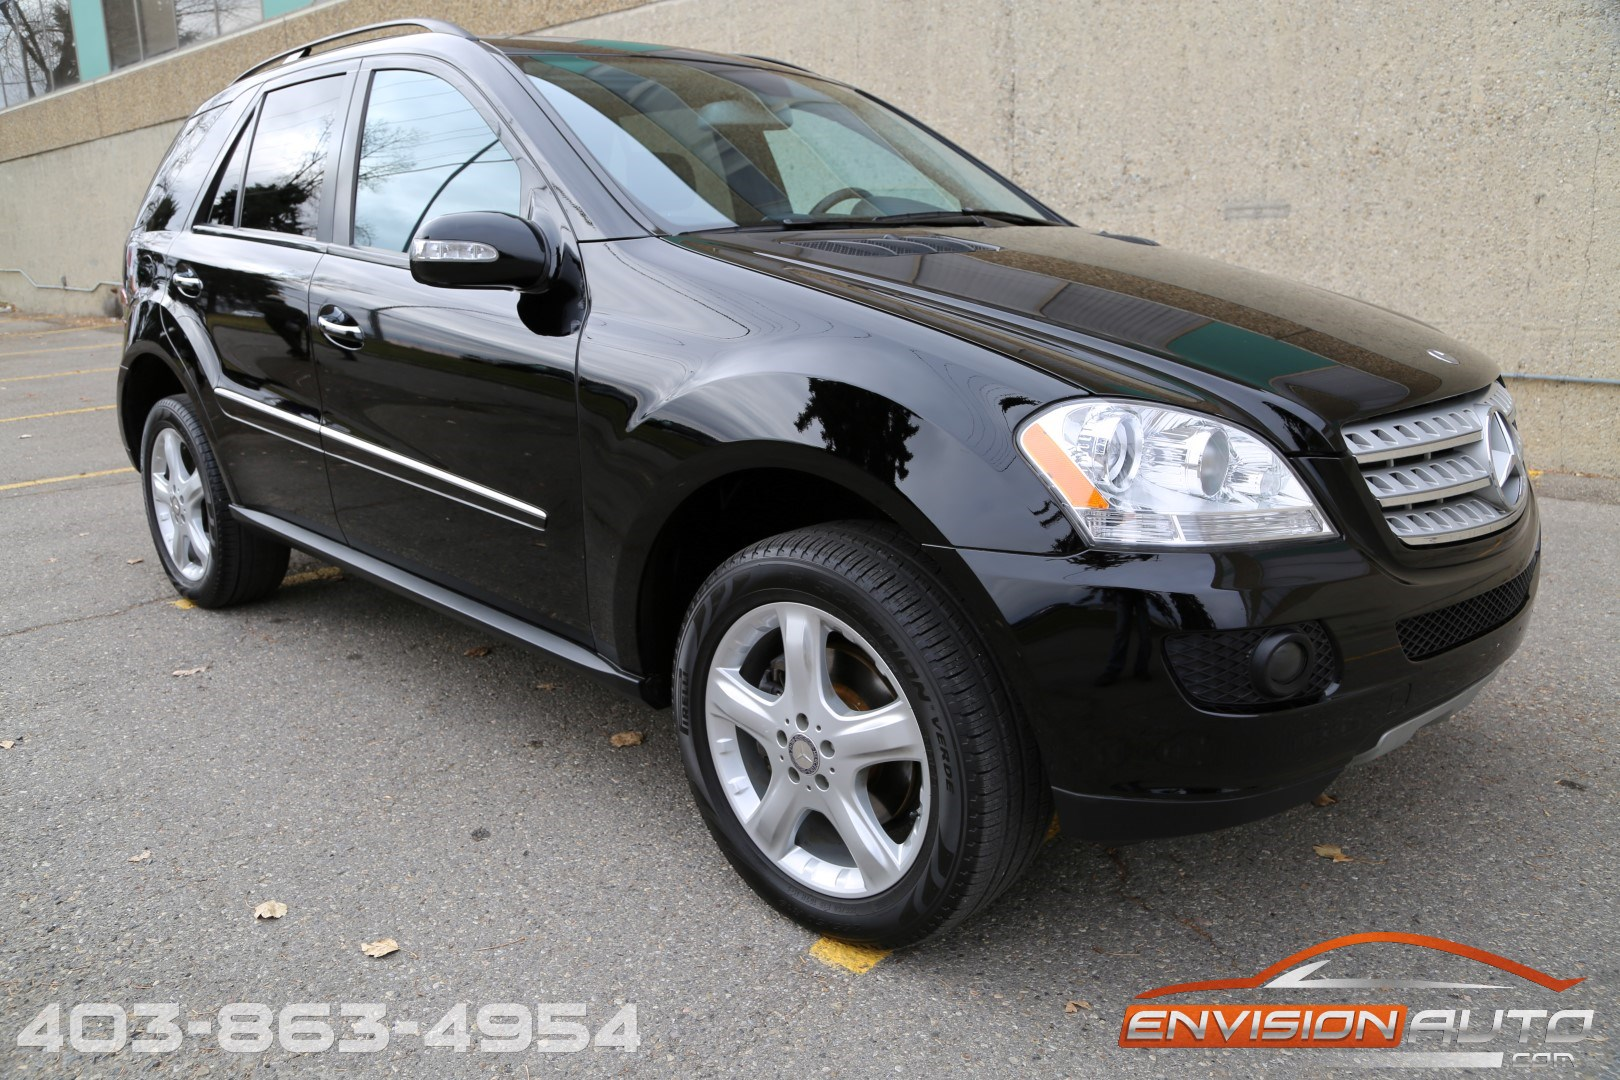 2008 mercedes benz ml350 4matic envision auto calgary for 2008 mercedes benz ml350